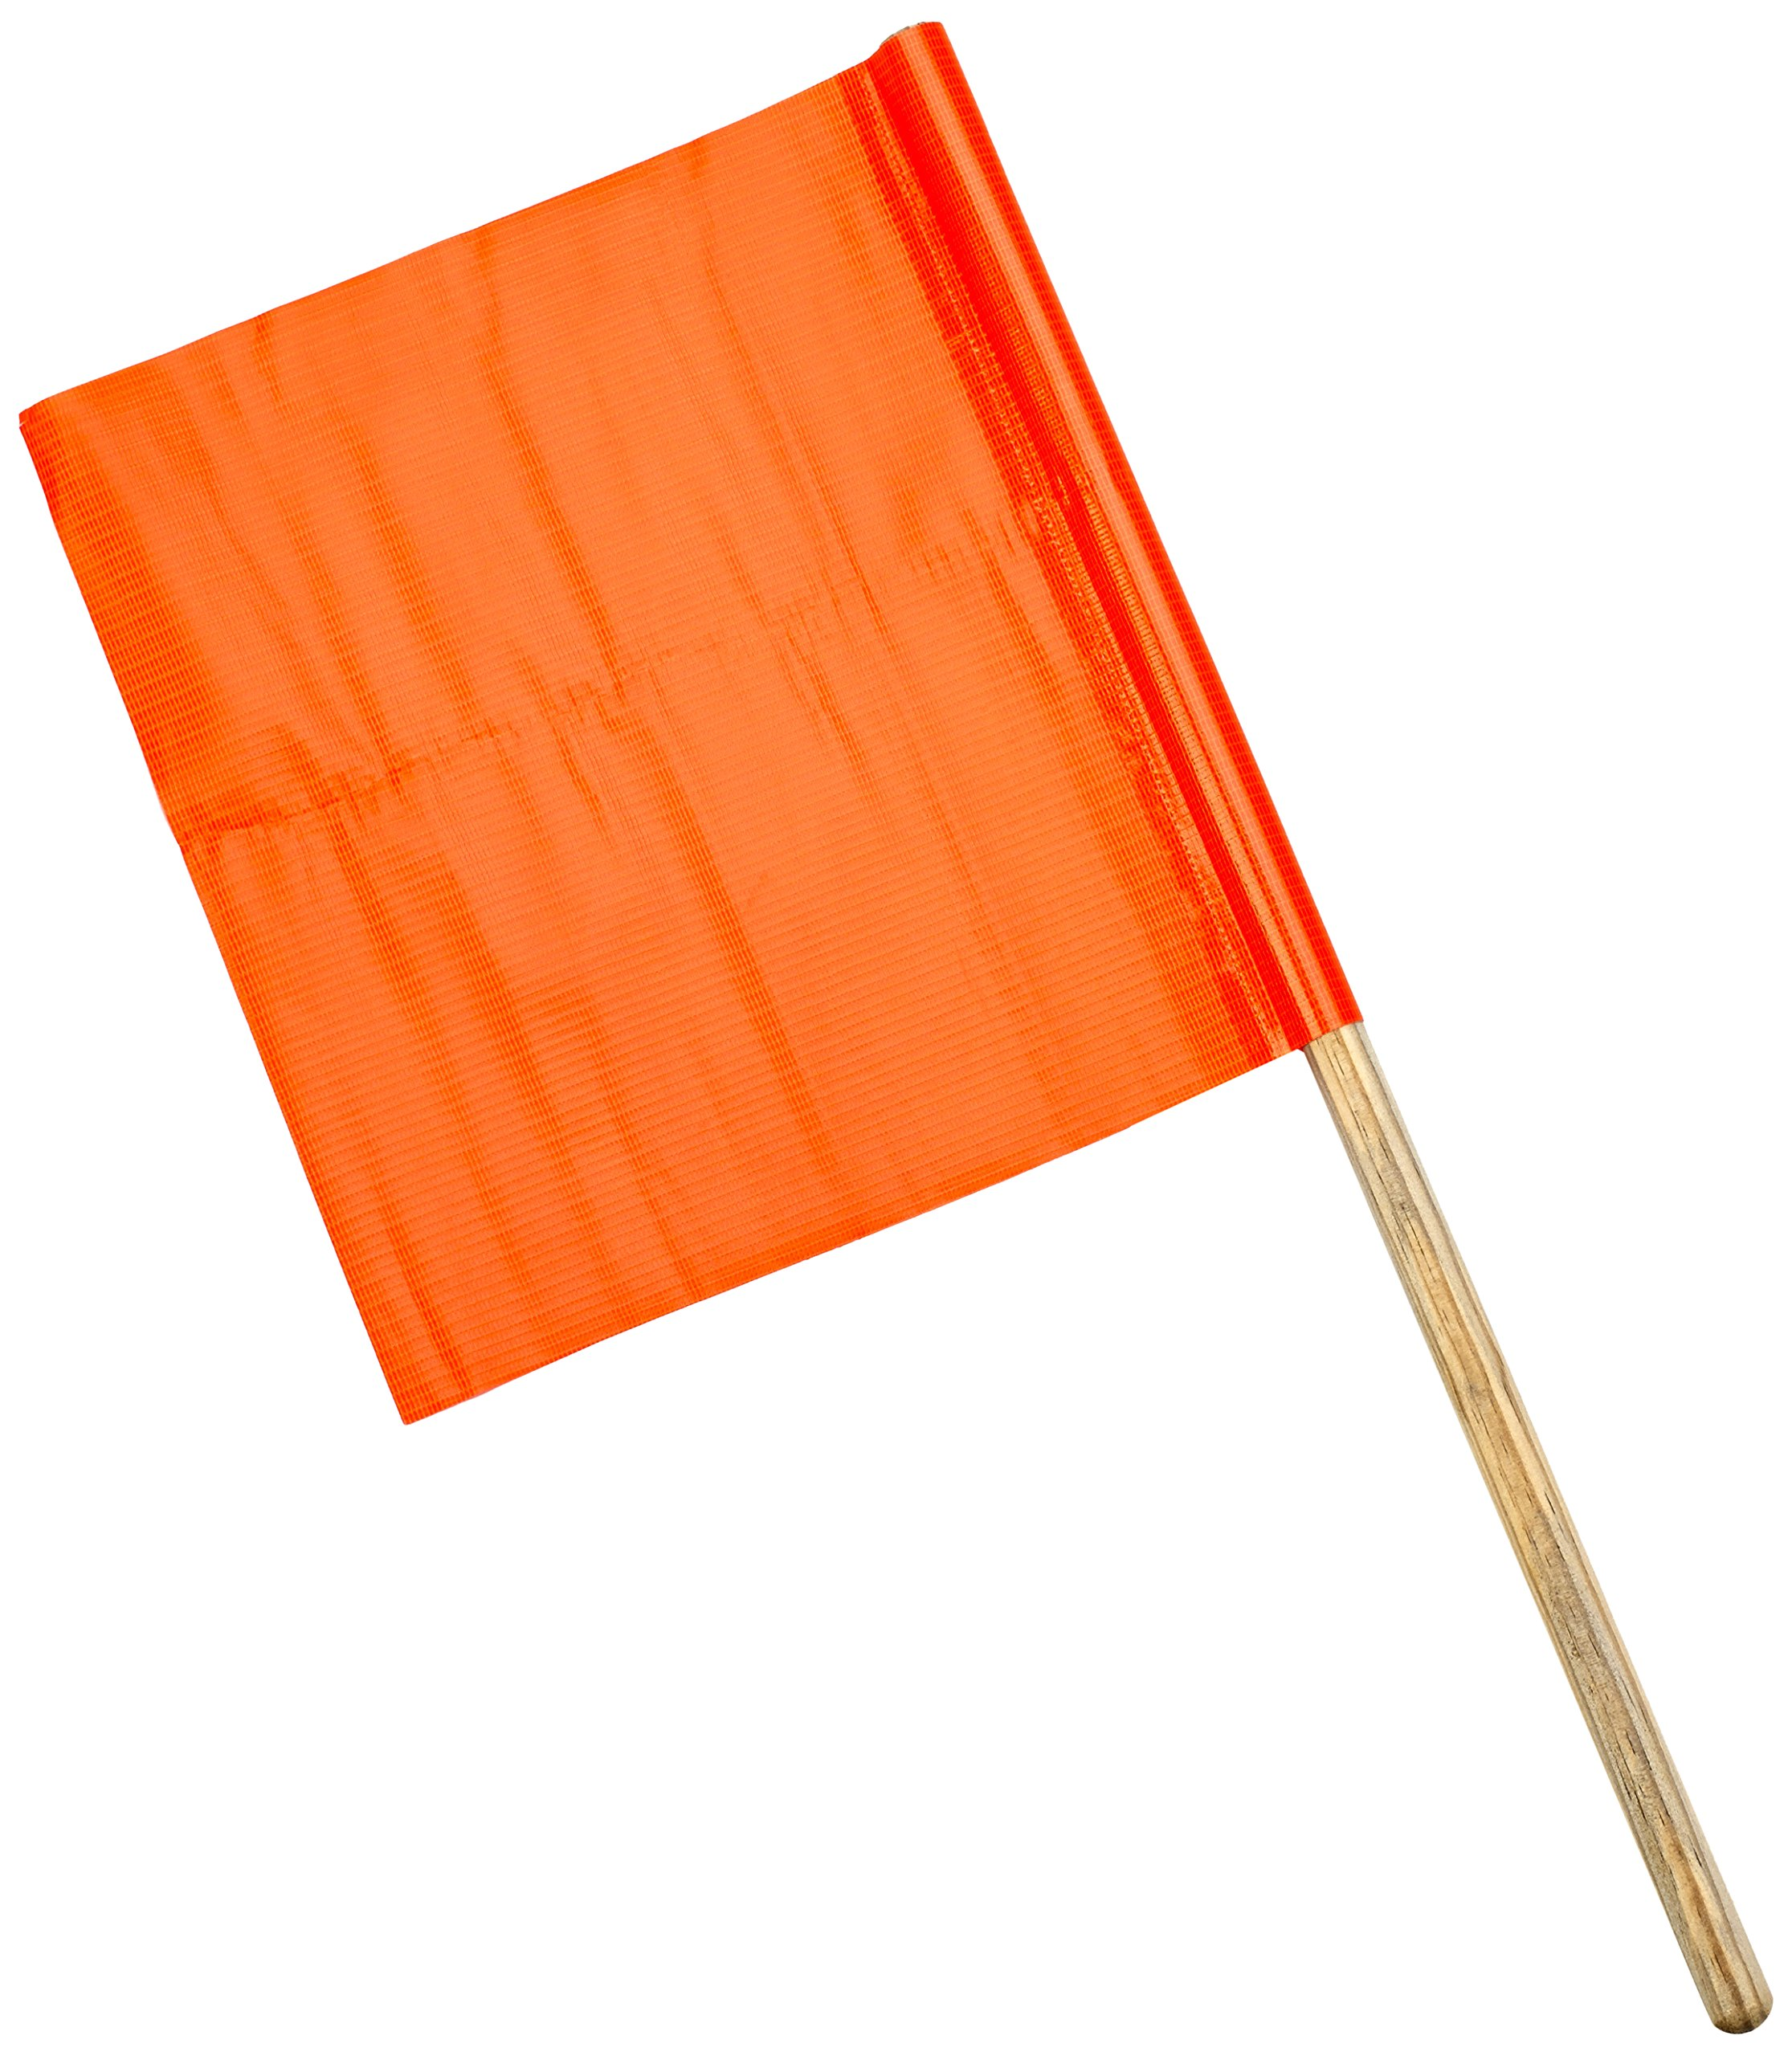 Mutual Industries 14994-0-12 Standard Vinyl Highway Safety Traffic Warning Flag, 12'' x 12'' x 24'' (Pack of 10)